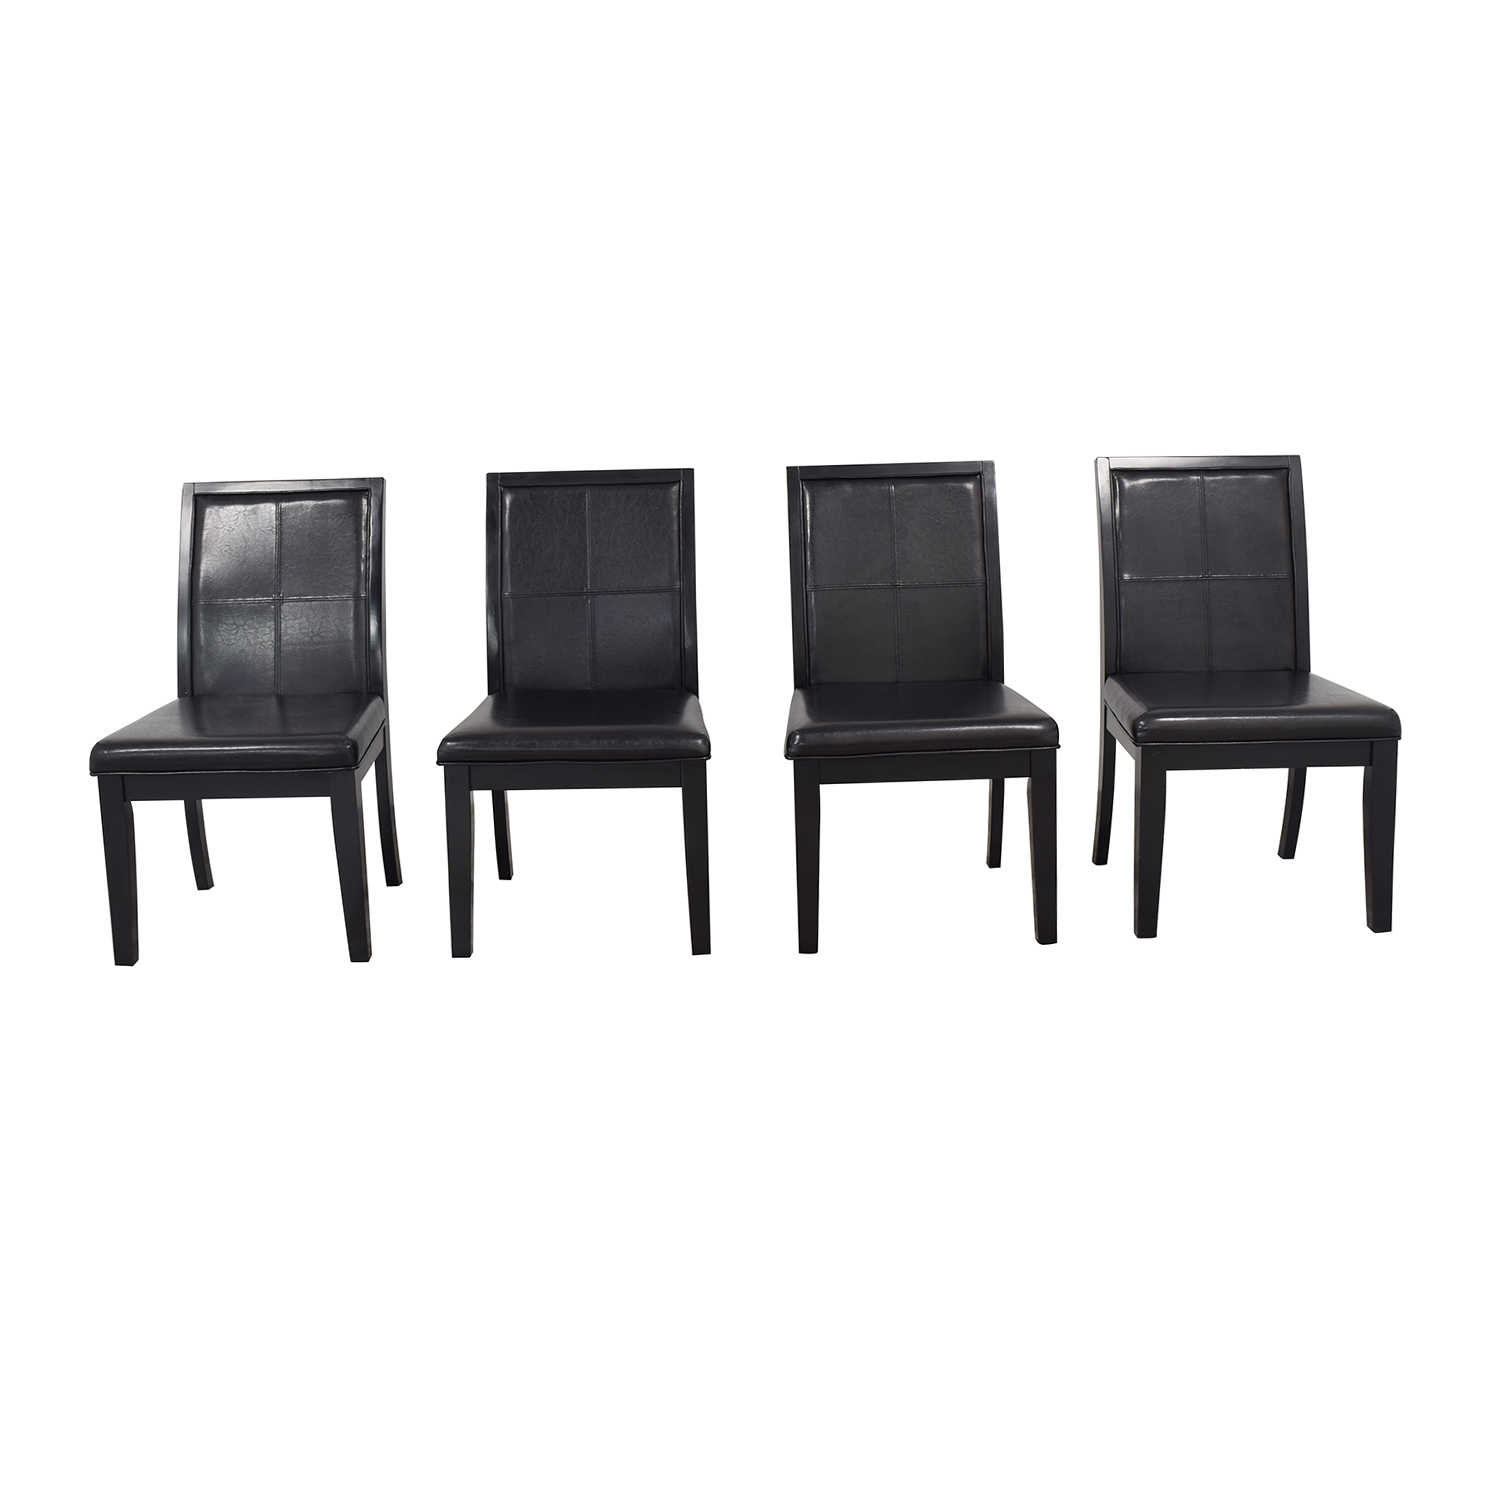 Calmart International Calmart International Dining Chairs Chairs